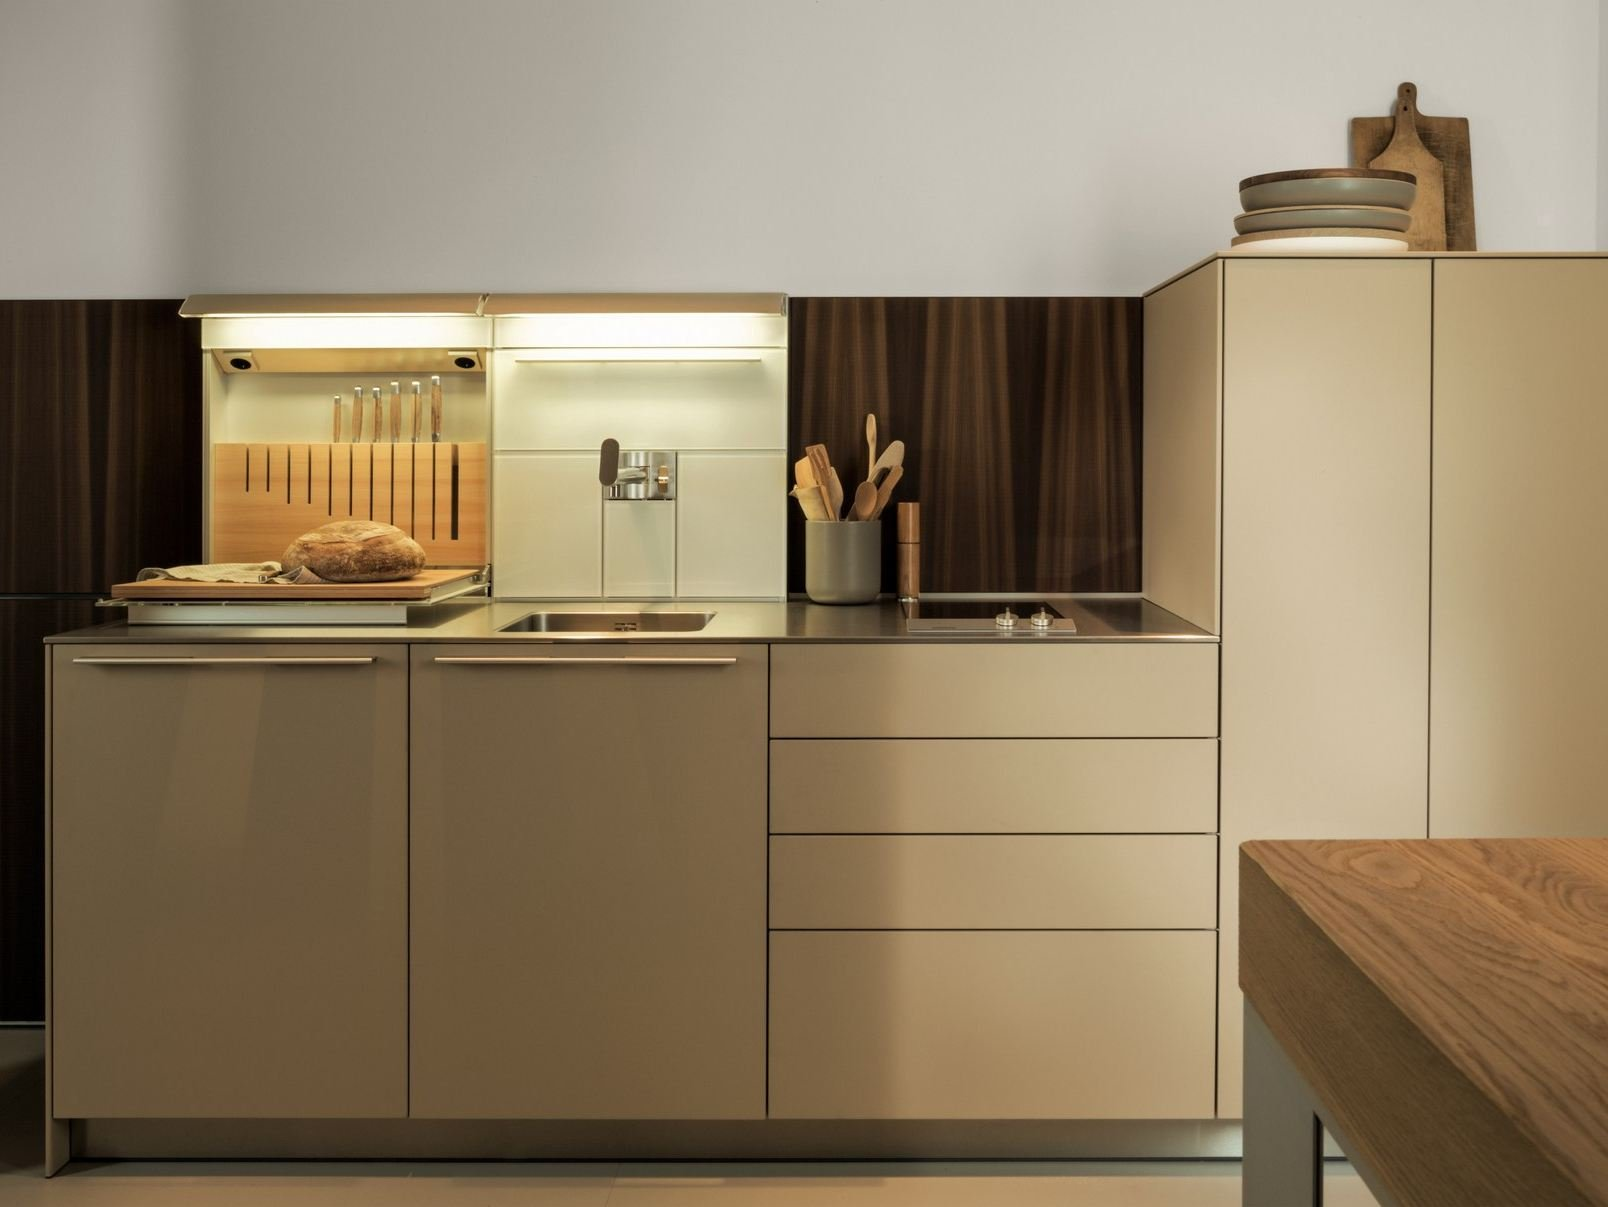 B3 Larch kitchen by Bulthaup